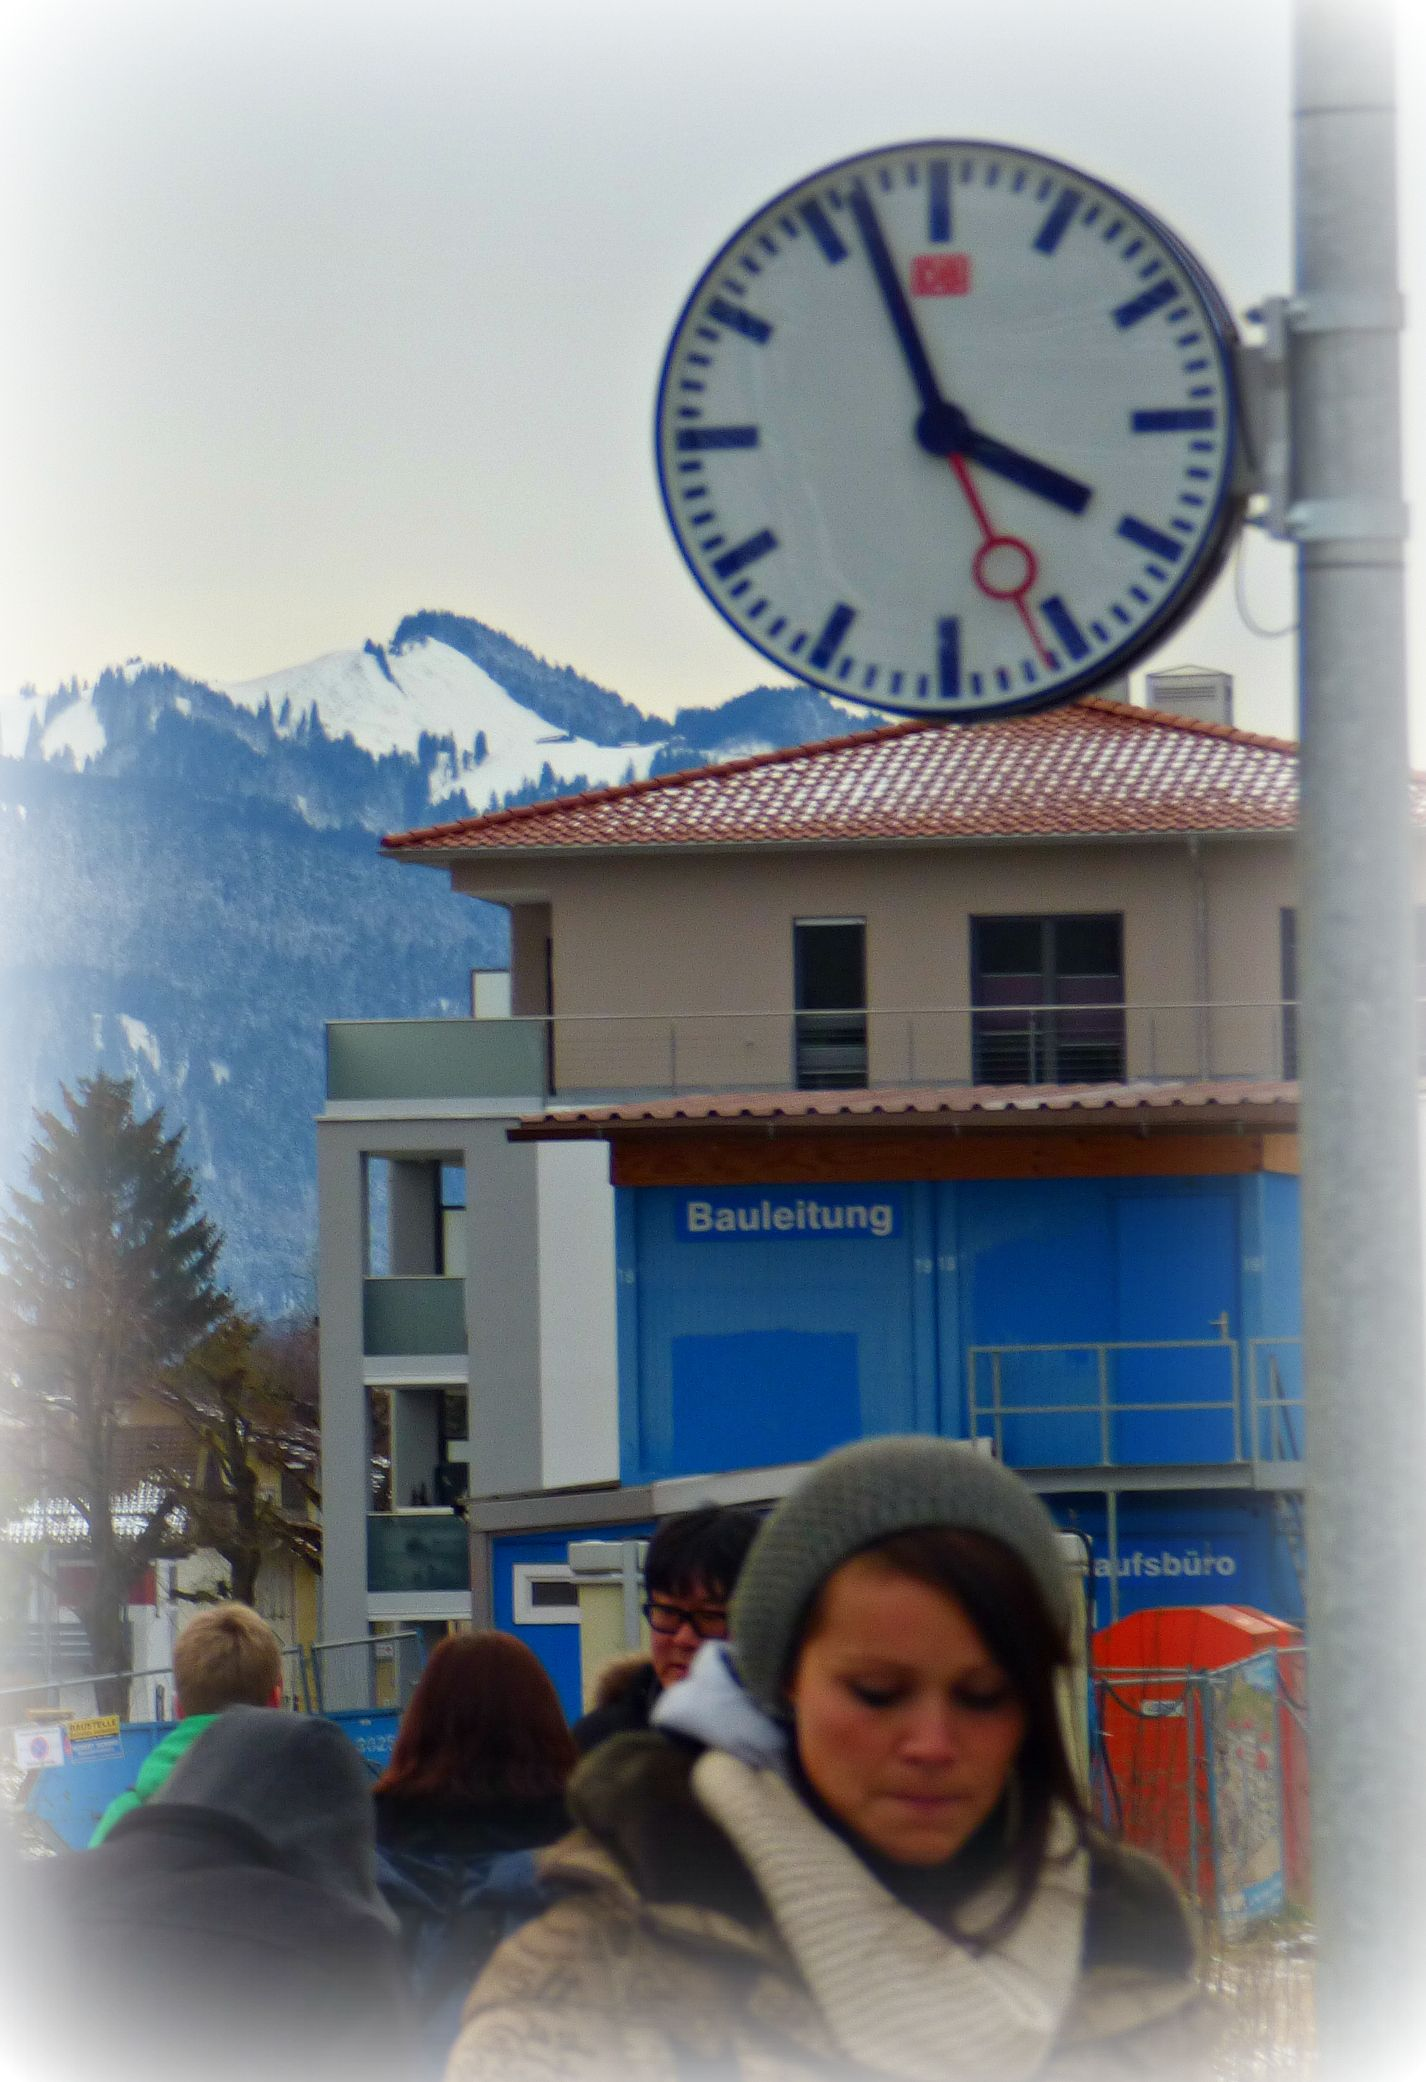 Just in Time - Jon Lander - © 2016 - Schwangau. Bavaria - we'd just ridden a bus down the mountain and ran as fast as we could for another bus in order to make this 4:00 train